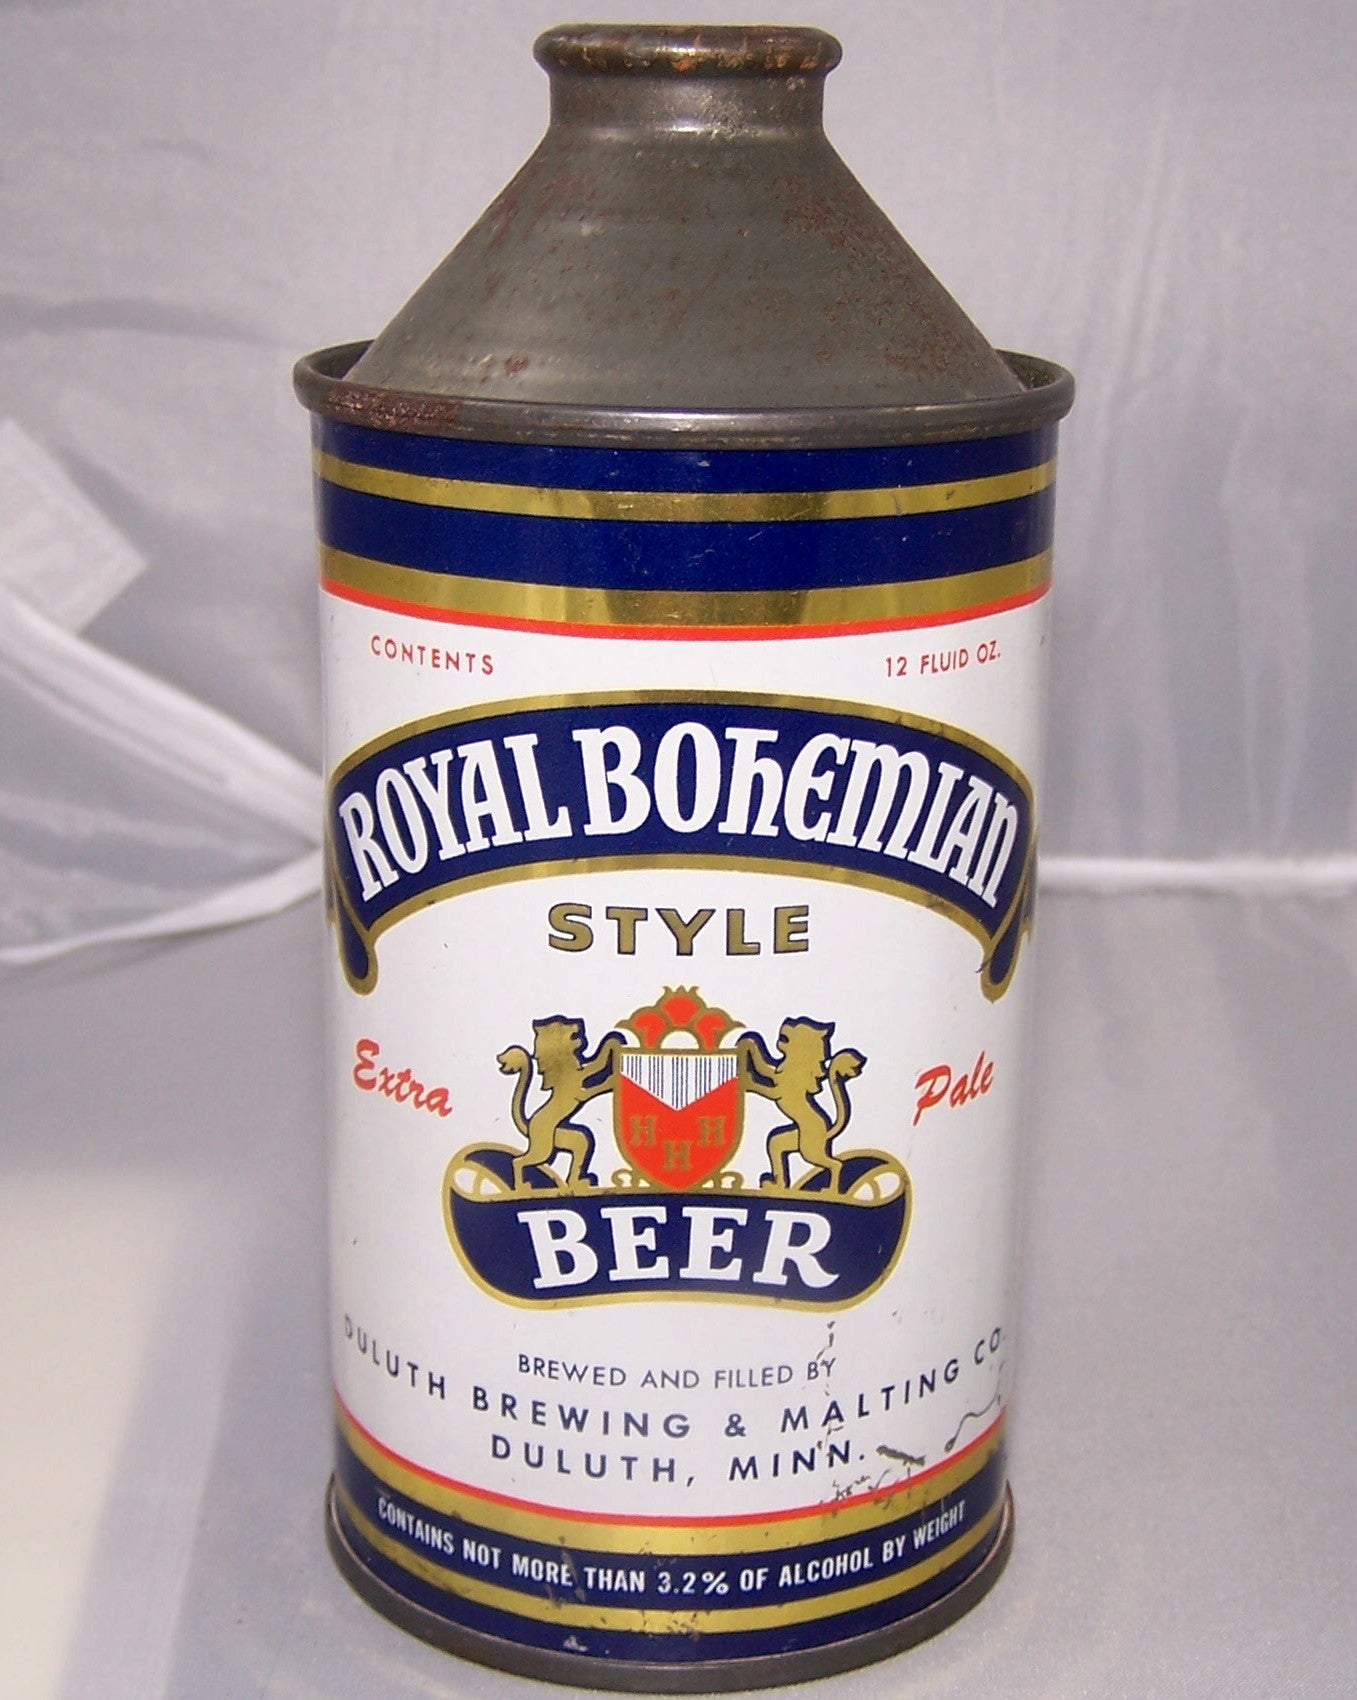 Royal Bohemian Style Beer, CNMT 3.2% USBC 182-17, Grade 1/1- Sold on 01/03/16